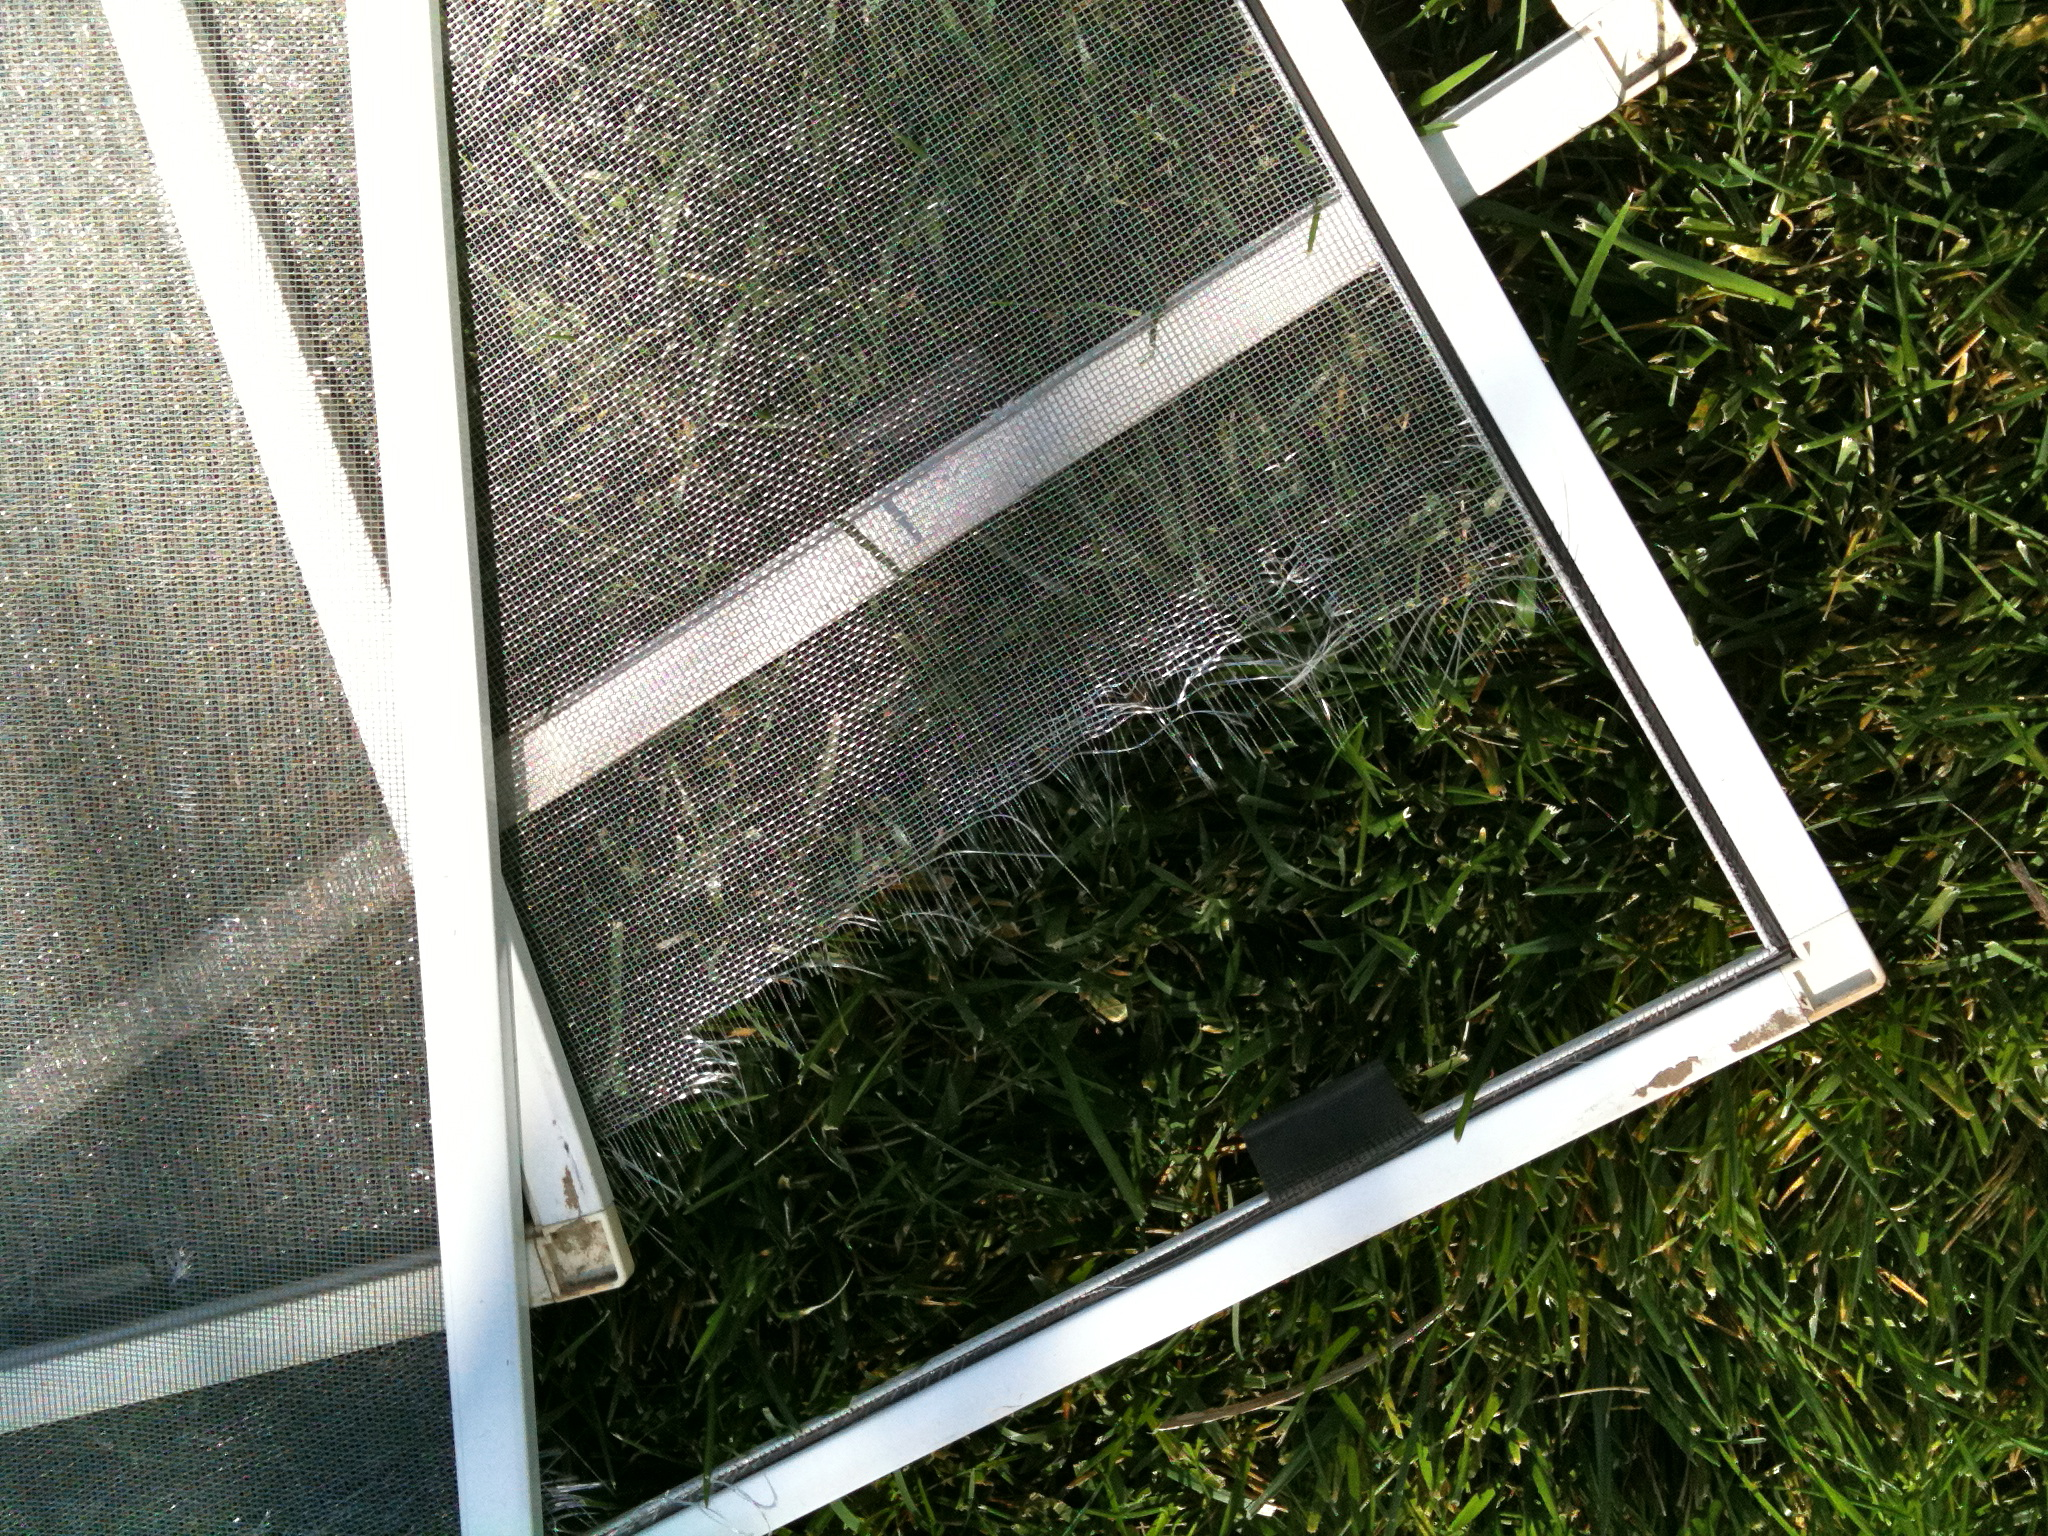 replacement windows make replacement window screen frame On window screen repair